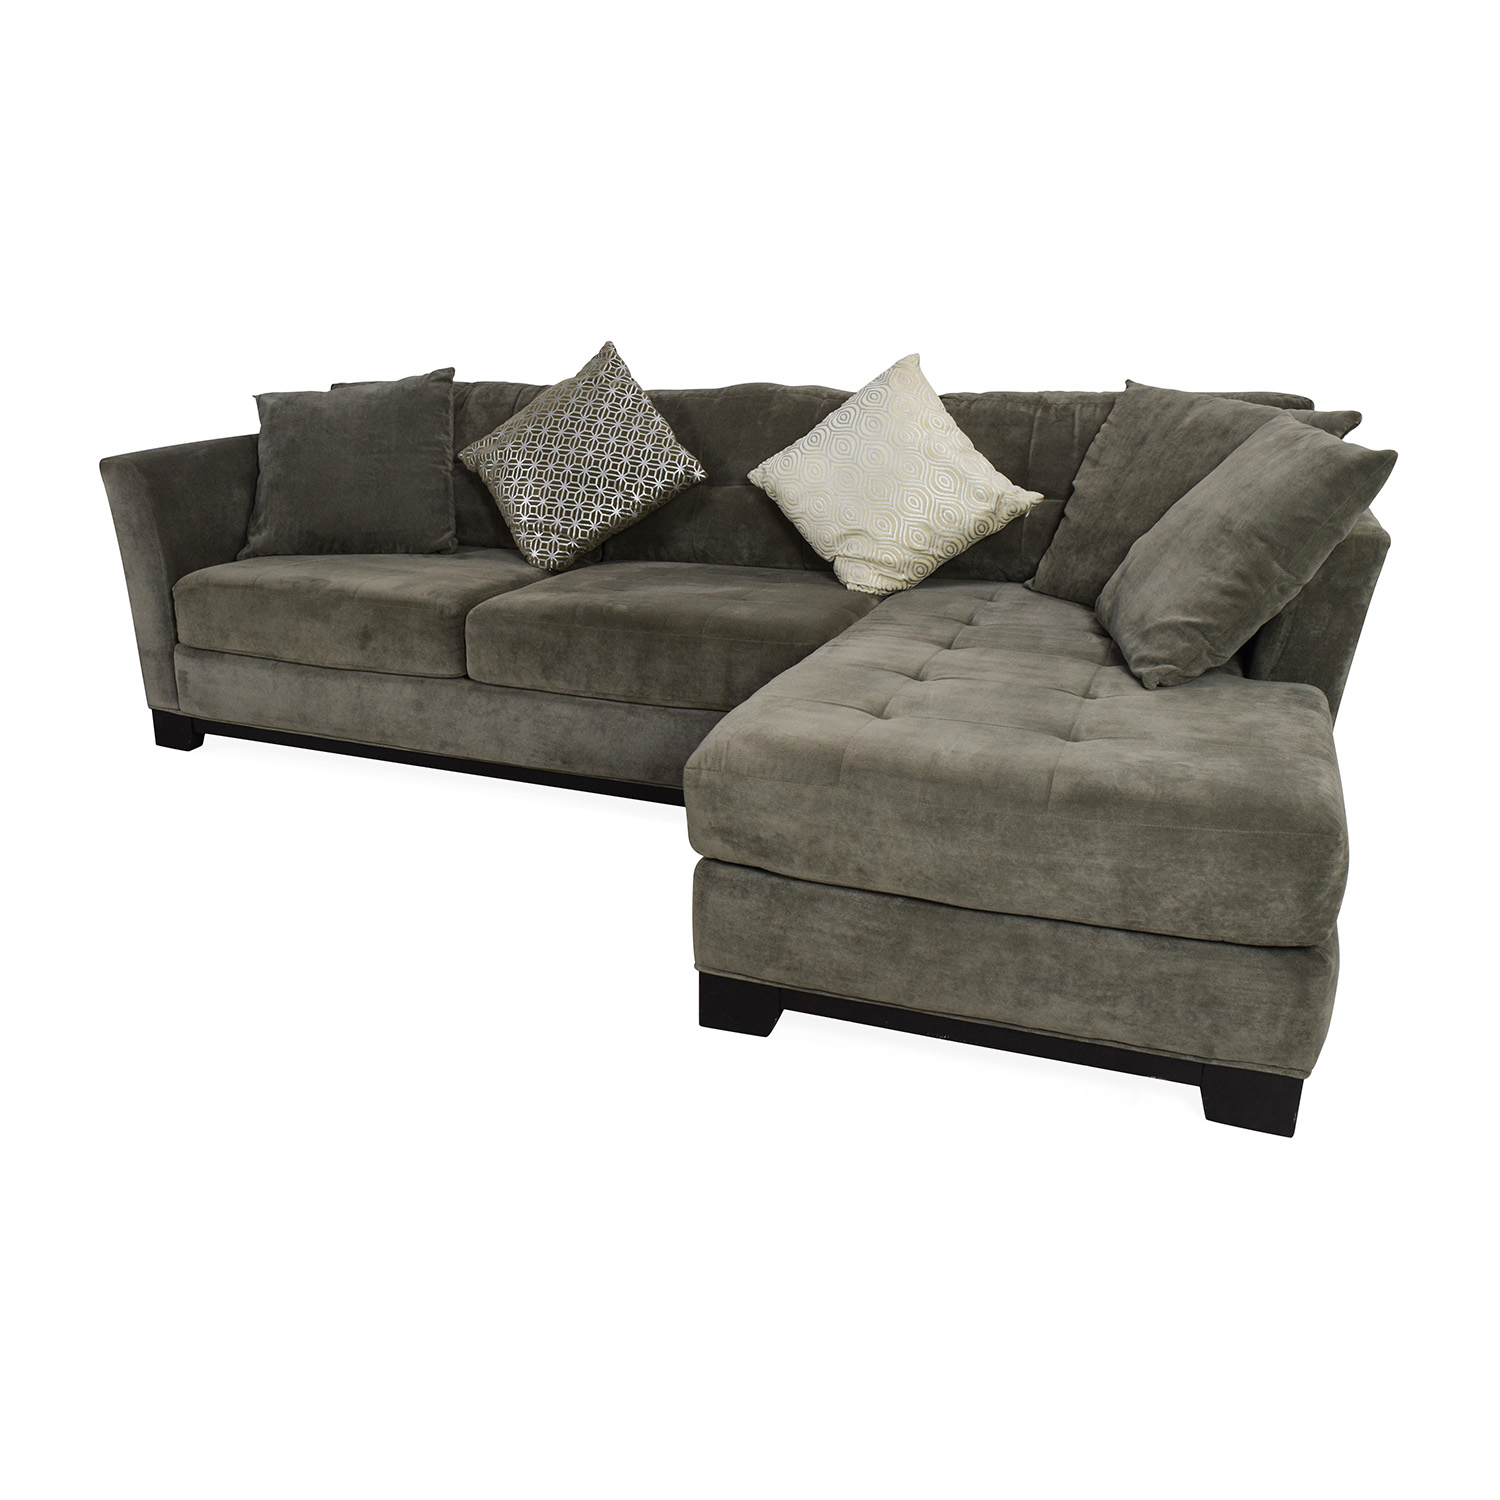 Macy S Sectional Sofa With Chaise